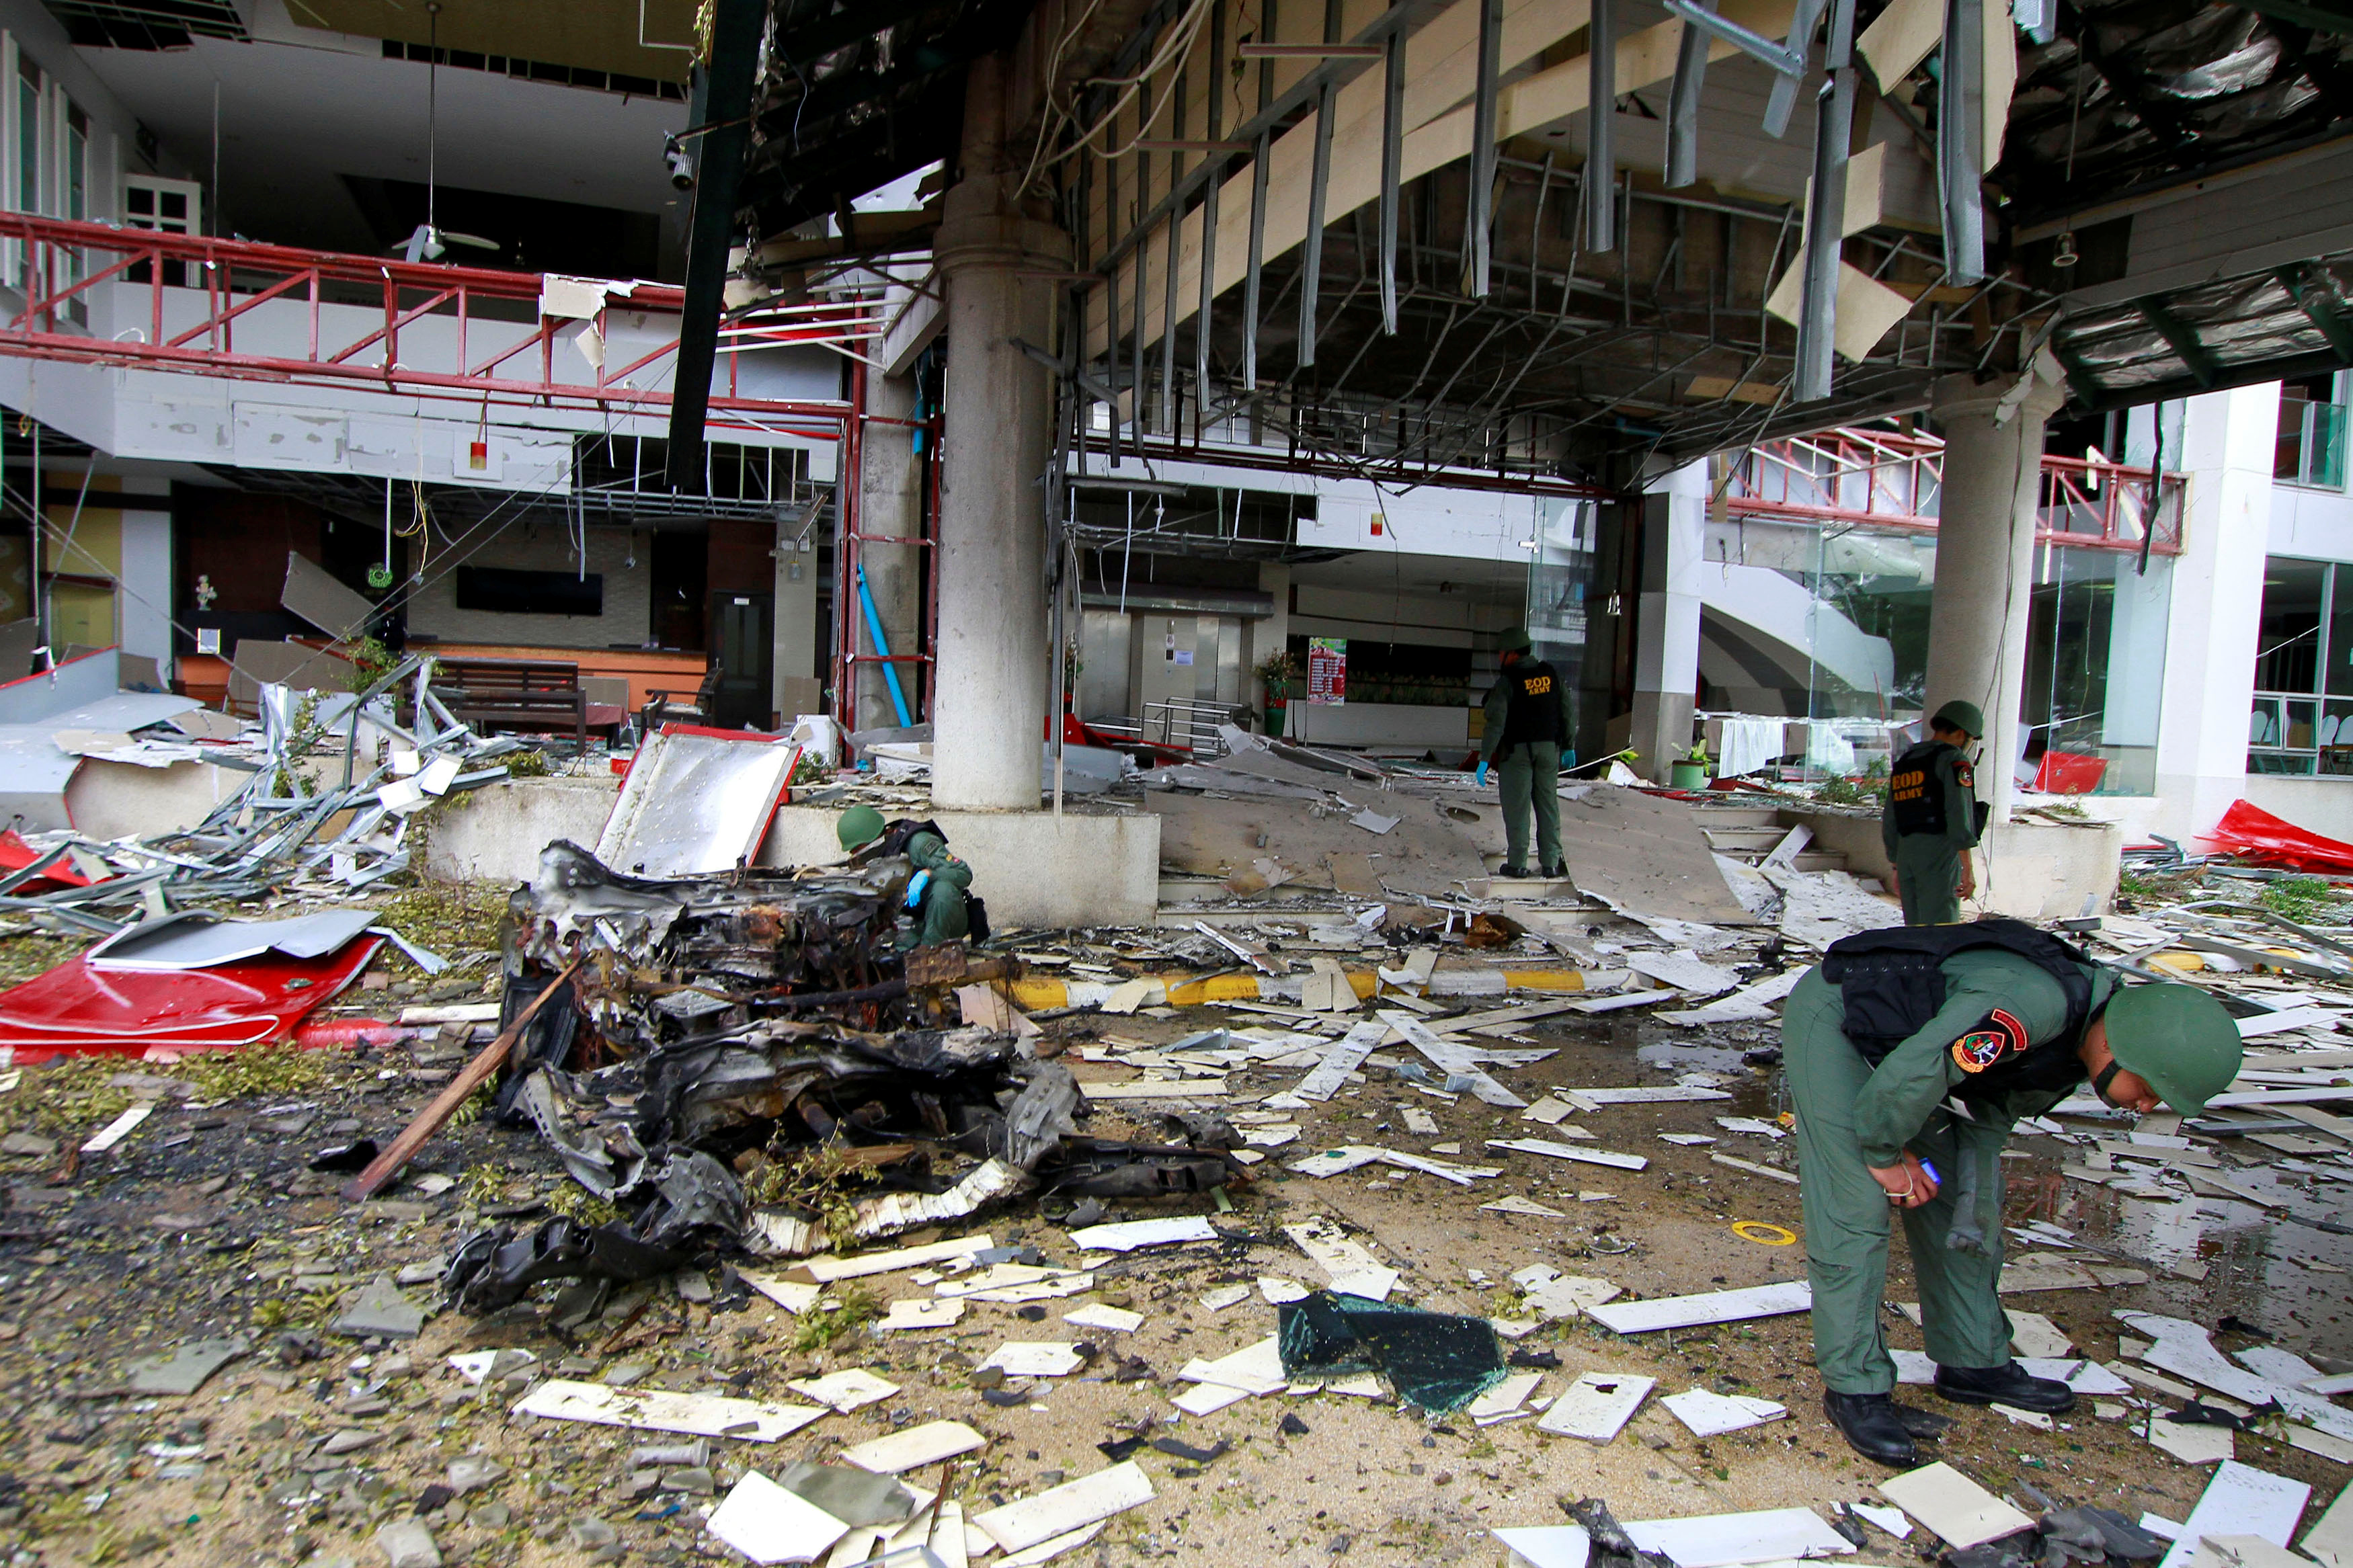 Thai soldiers inspect the scene of a car bomb blast outside a hotel in the southern province of Pattani, Thailand on August 24, 2016.